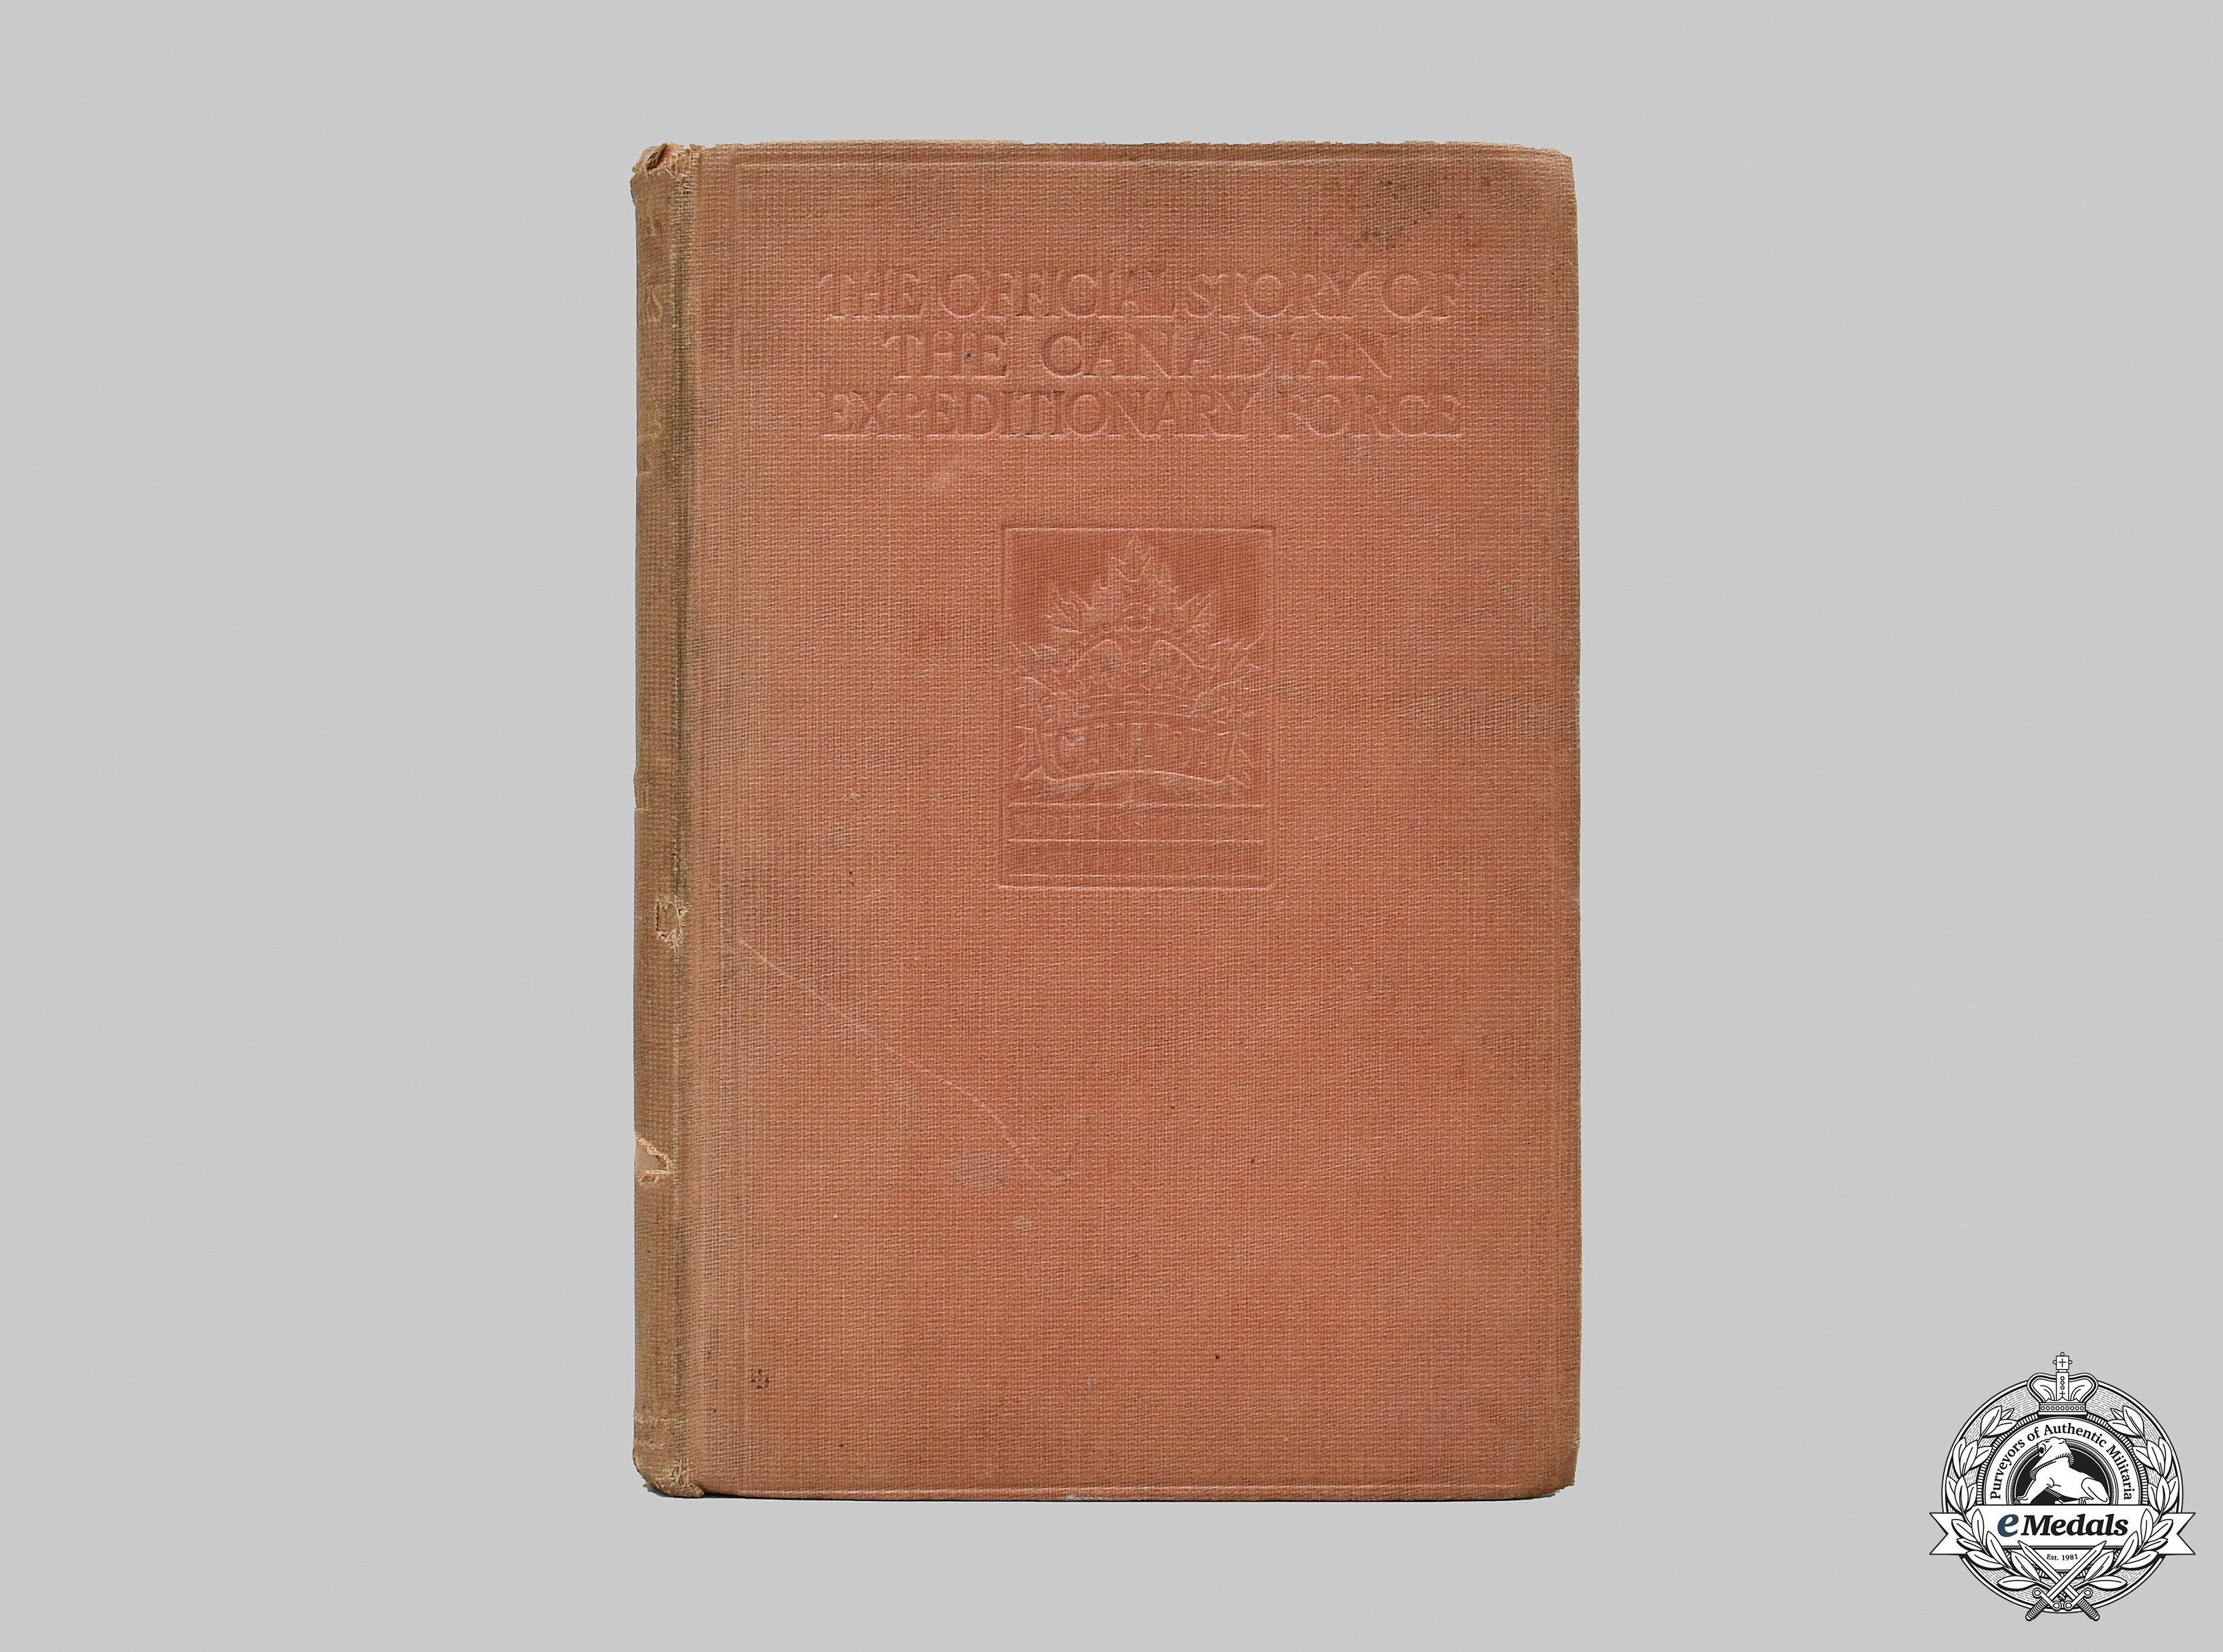 Canada, CEF. Canada in Flanders - The Official Story of the Canadian Expeditionary Force, Volume III